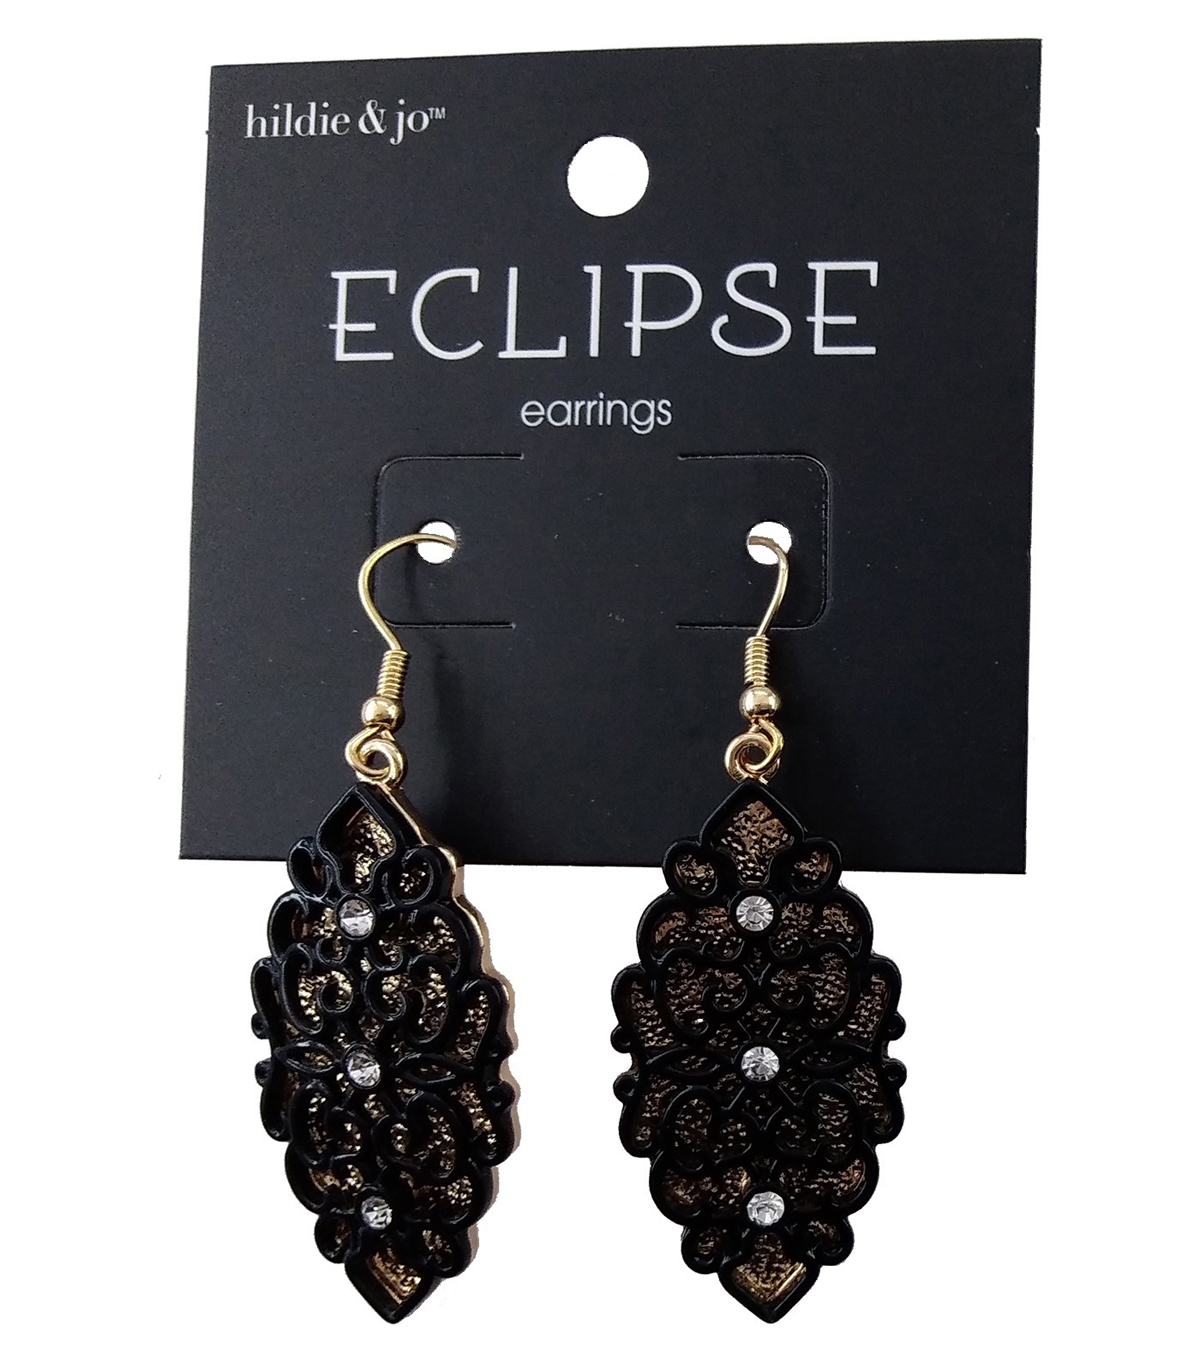 hildie & jo Eclipse Earrings-Gold Background Black Cute Out